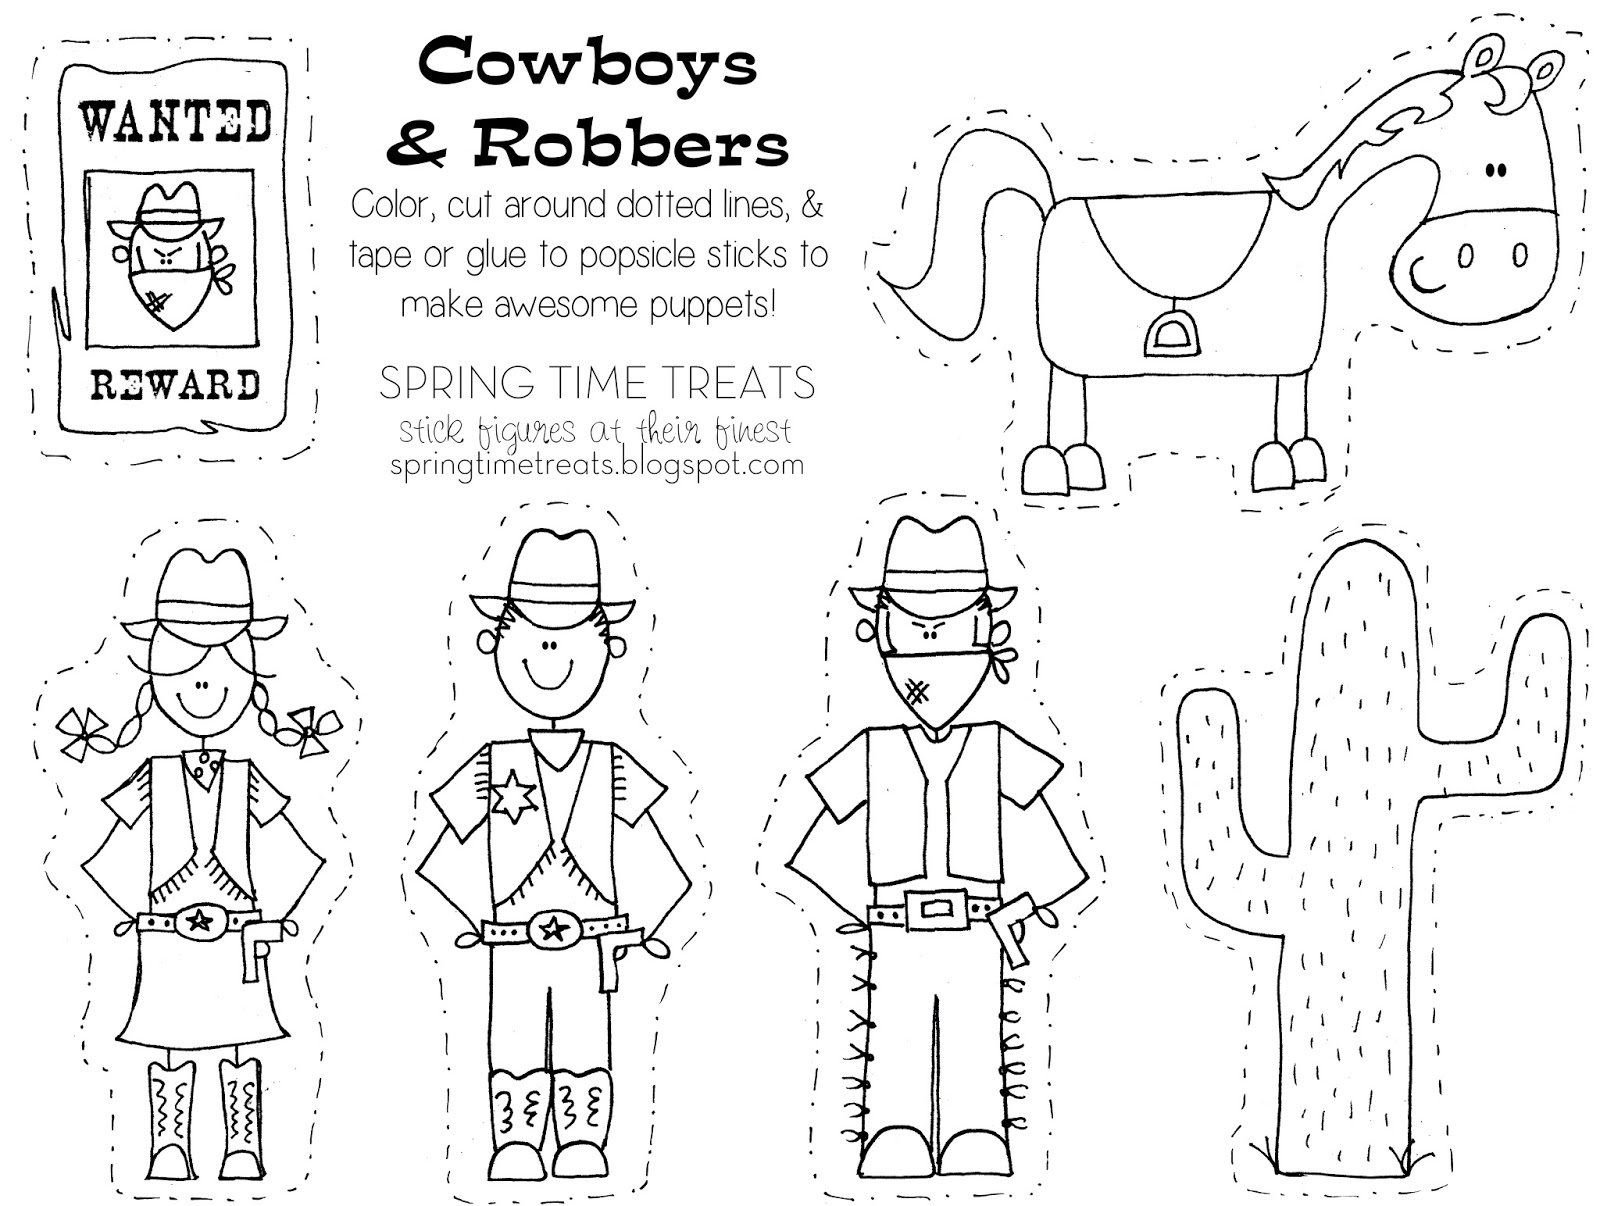 click here to download cowboys robbers coloring page in jpeg or pdf